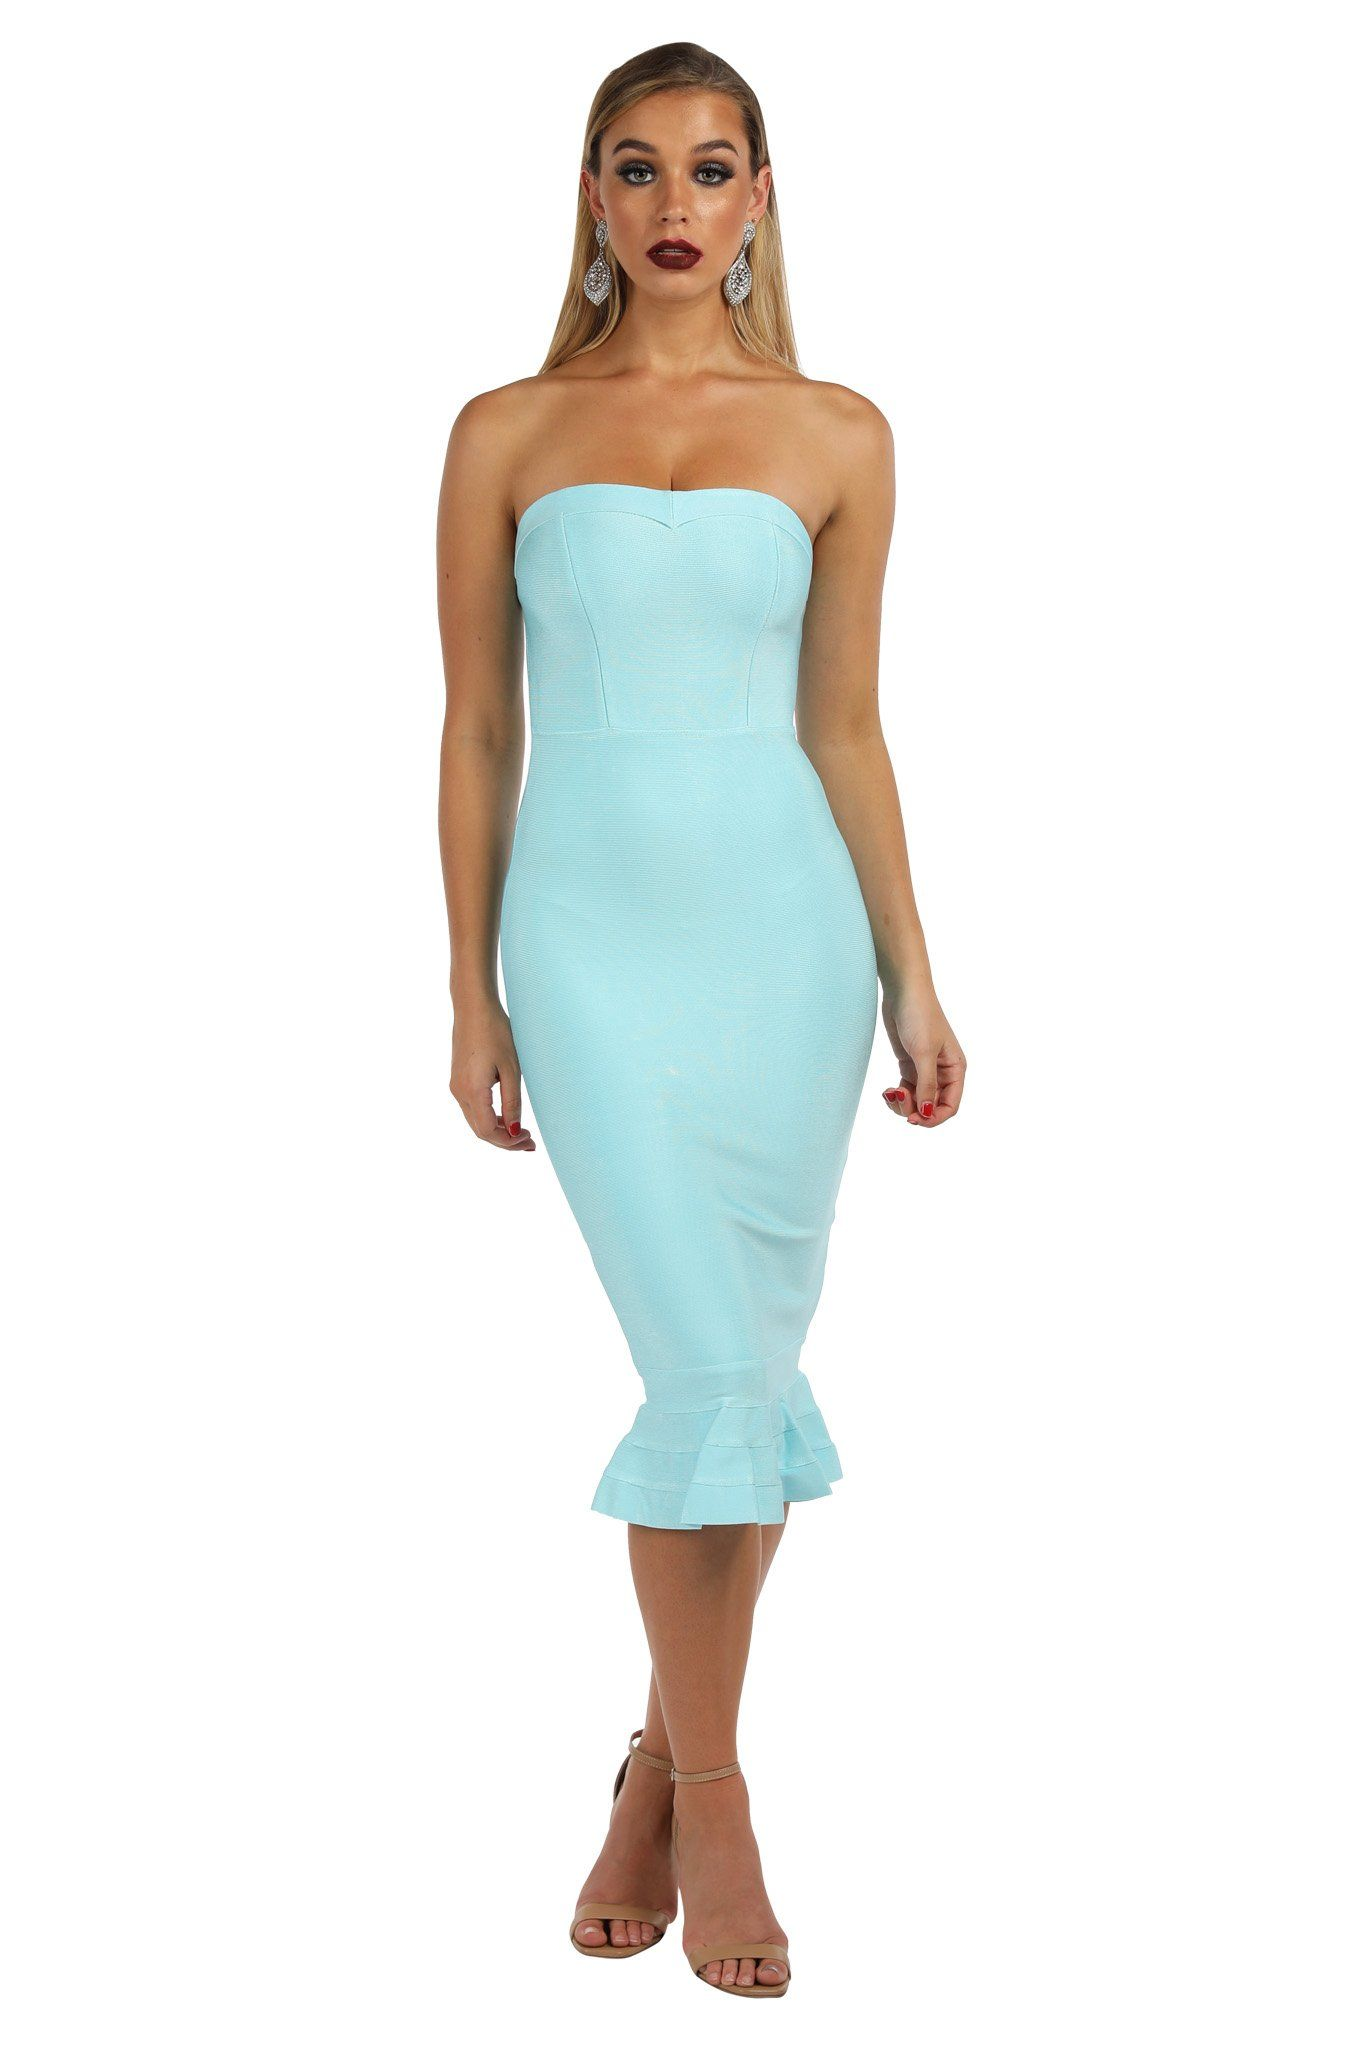 Light blue colored strapless bandage dress with fluted hem design in midi below knee length